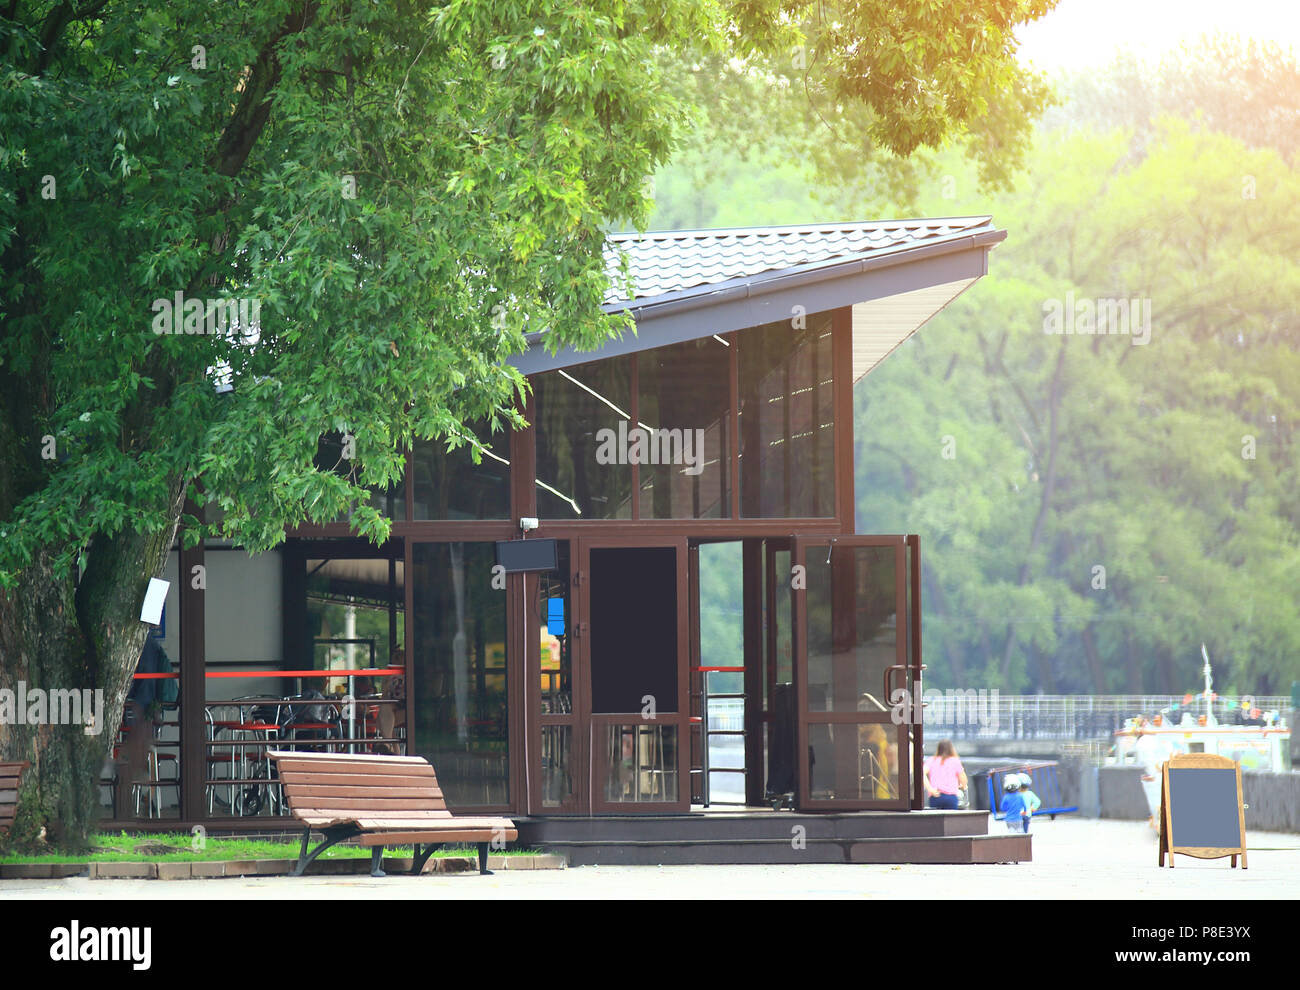 cozy cafe in the center of the city Park - Stock Image